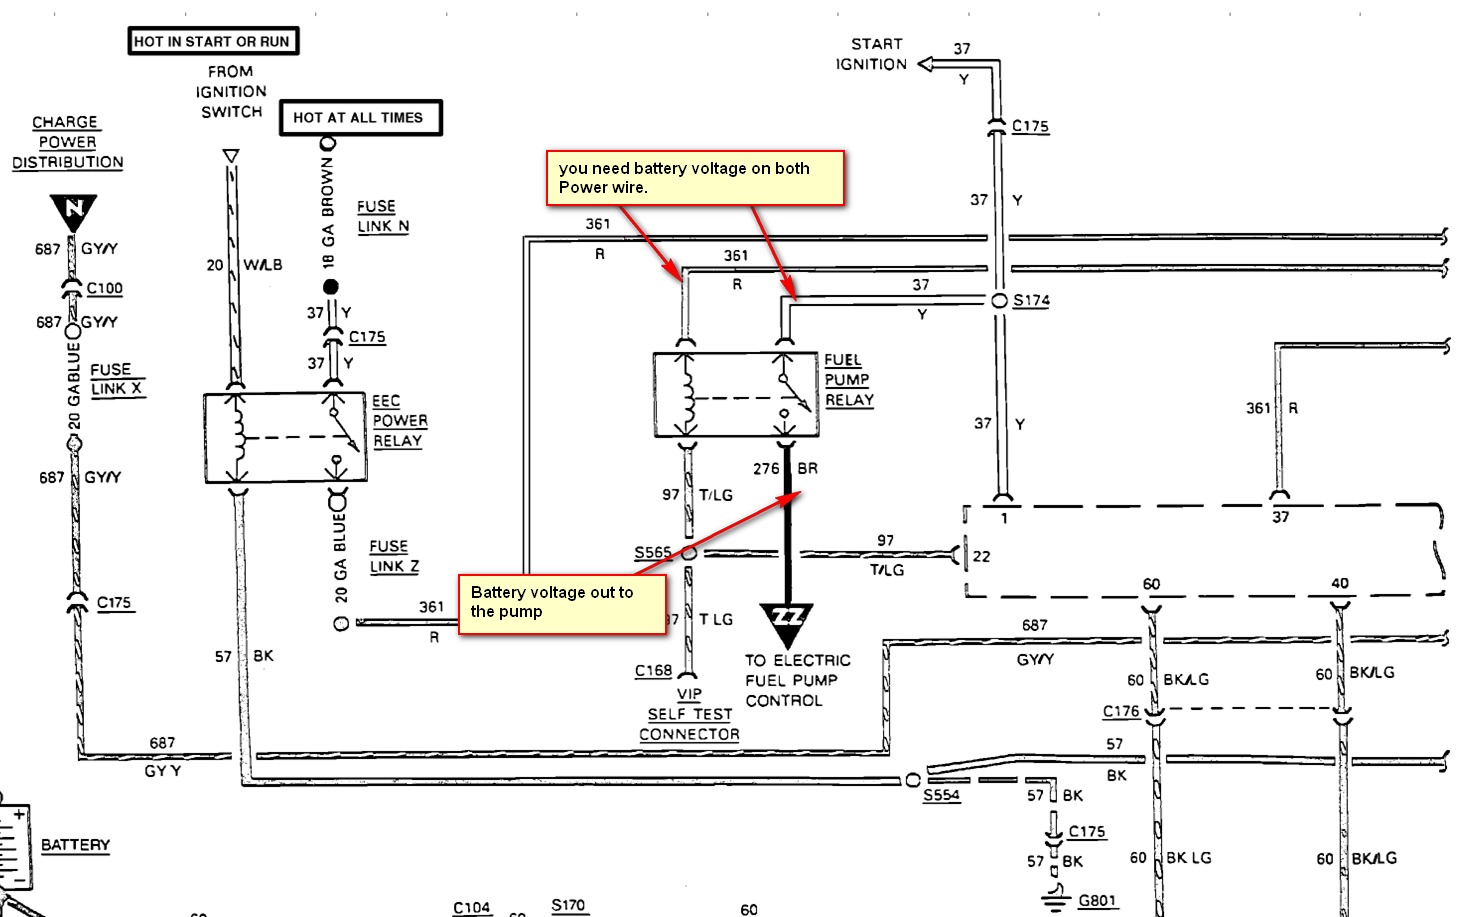 98 Ford Explorer Fuel Pump Wiring Diagram 1988 F 150 4x4 Diagrams F150 Relay Free Engine Image For User 1998